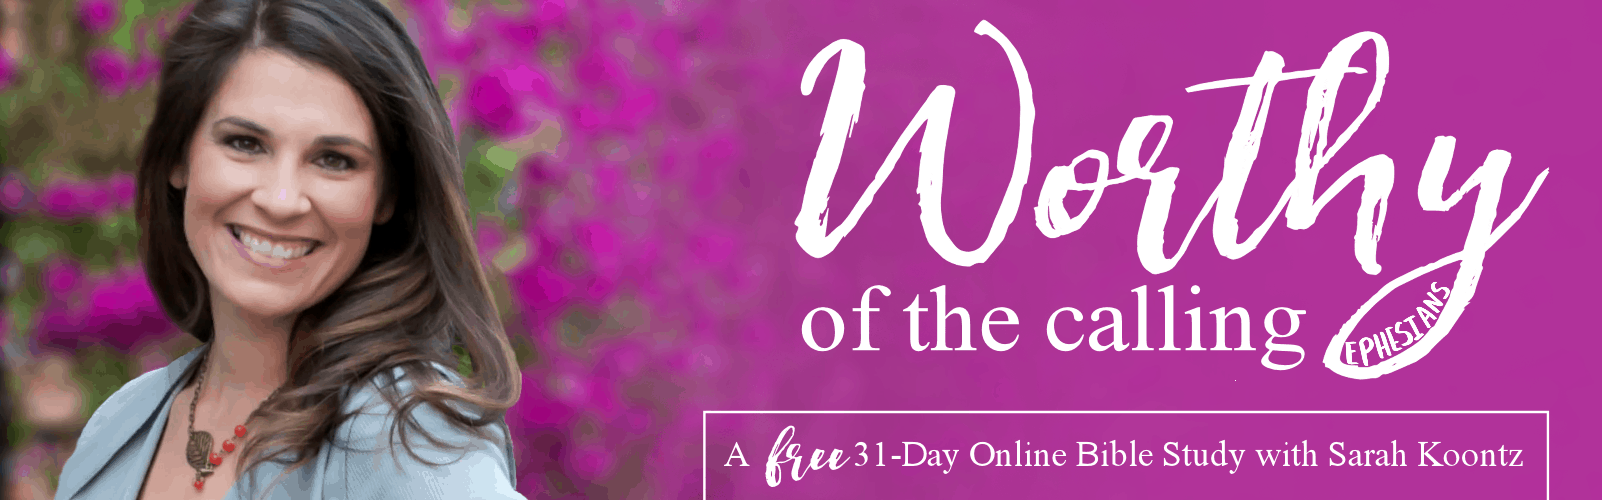 Do you sometimes feel you are too busy for Bible study? Do you long to grow in your Christian faith, yet struggle to find the right place to start? I've got great news for you!  This 31-day study on the book of Ephesians was created for busy women just like you. All you need to complete the study  is 15-minutes per day and your iPhone. | Free Online Bible Study for Women | Christian Inspiration | Tips and Ideas for Studying Gods Word | Free Printables